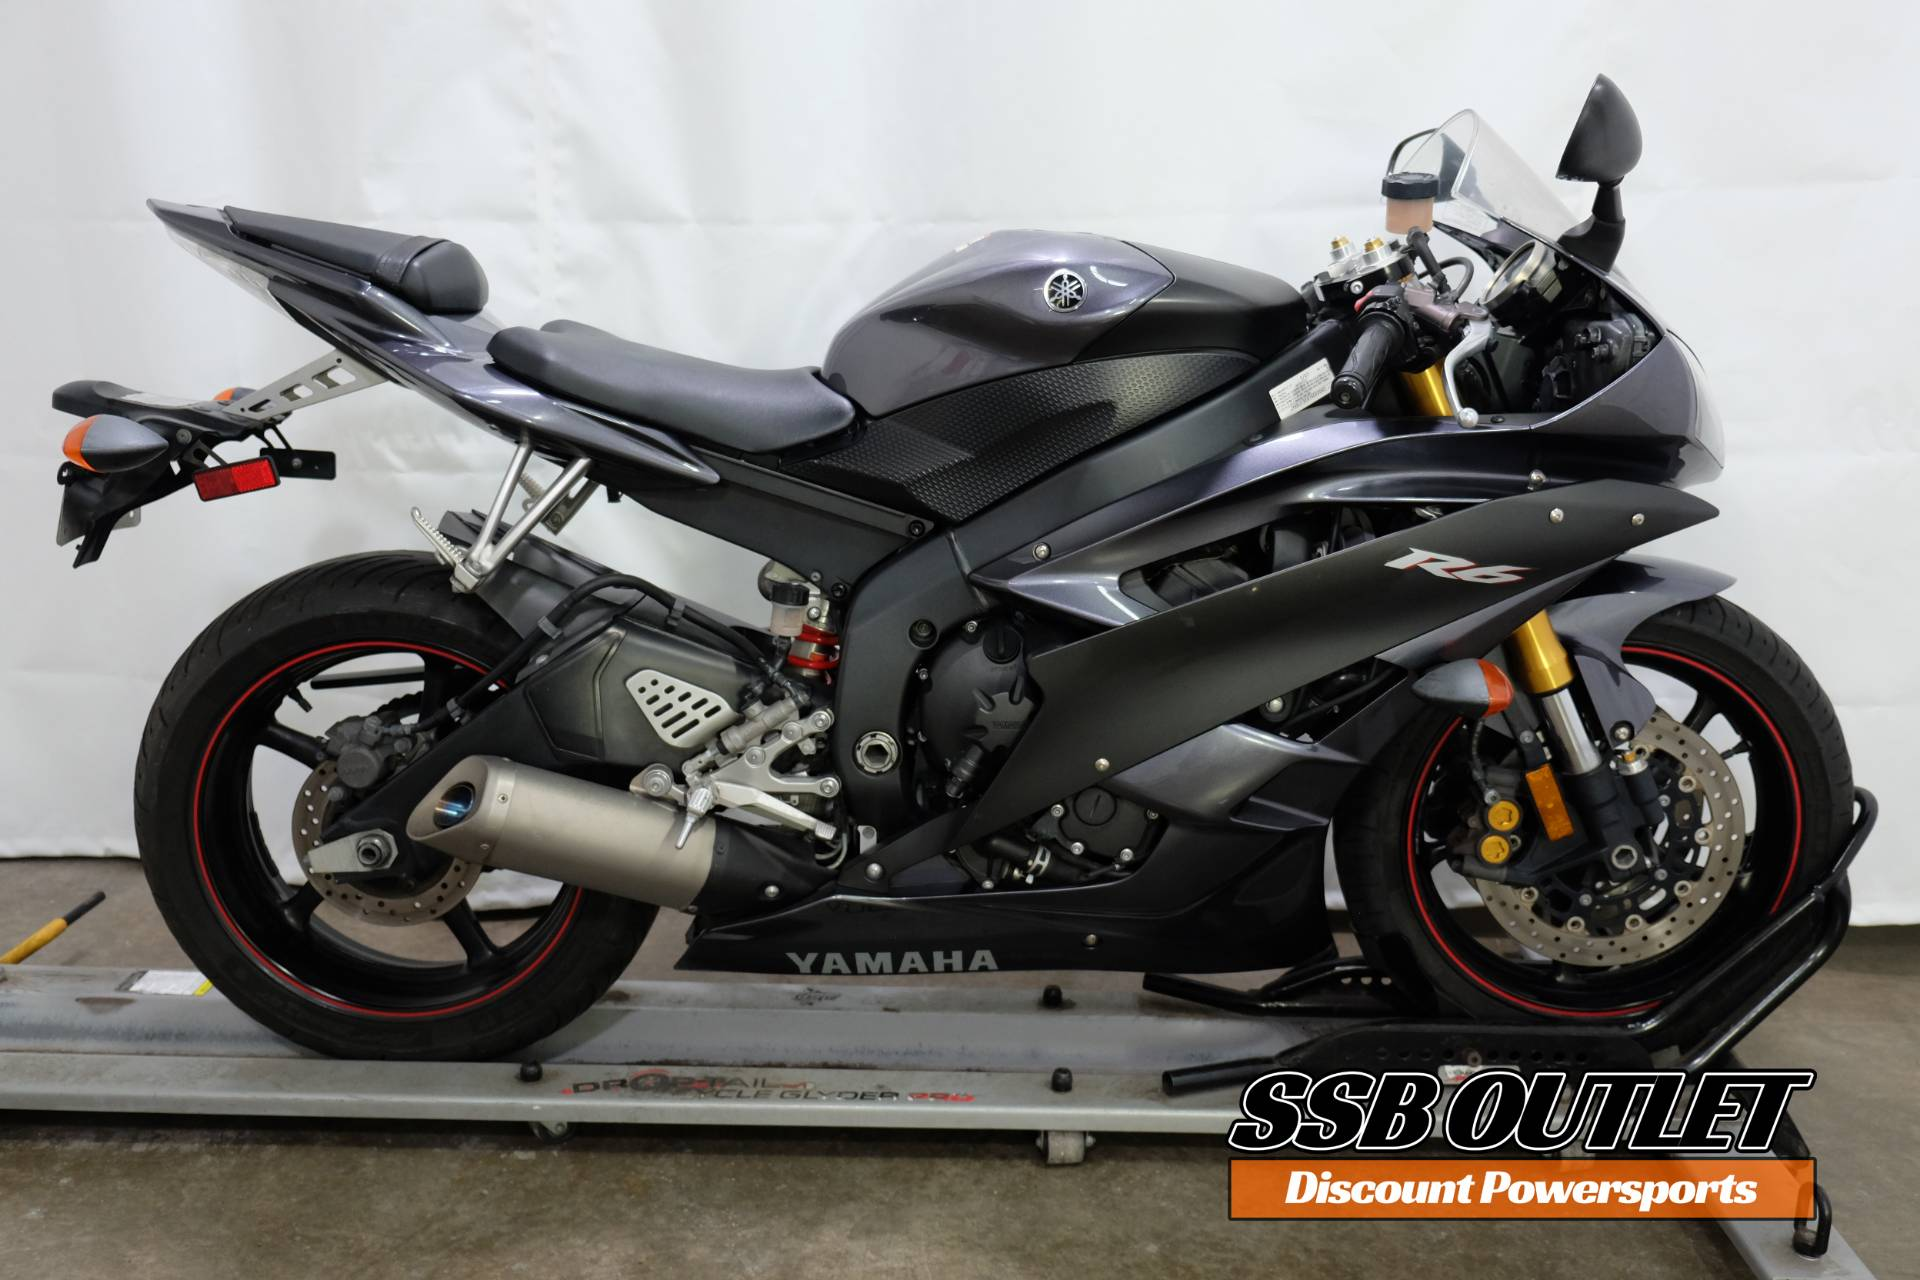 2007 Yamaha YZF-R6 for sale 146828